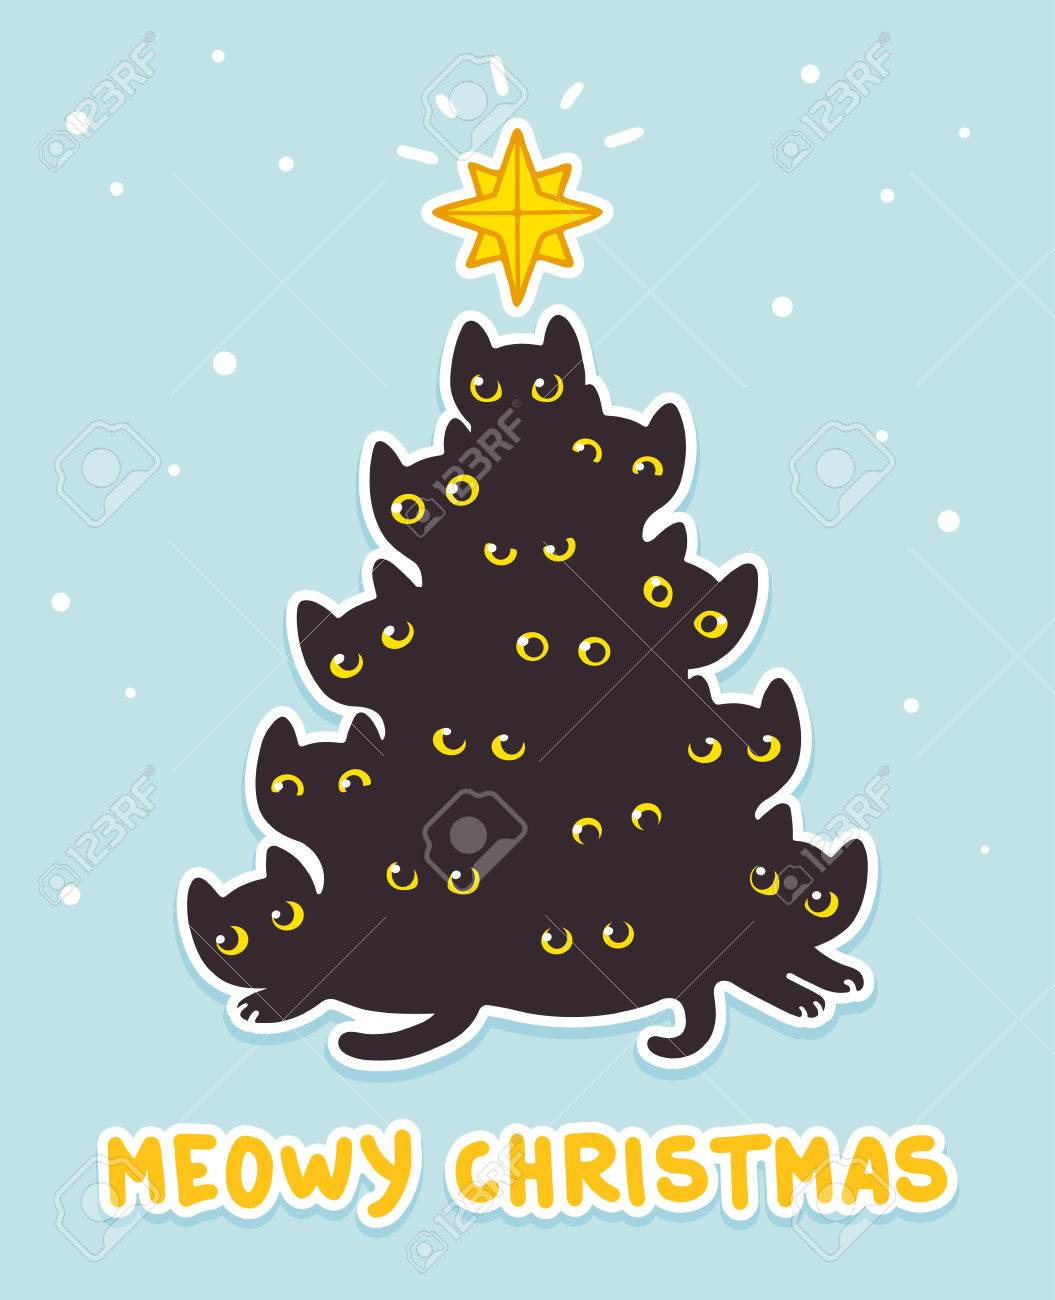 Cute Christmas Tree Of Cartoon Black Cats With Text Meowy Christmas. Funny  Greeting Card For